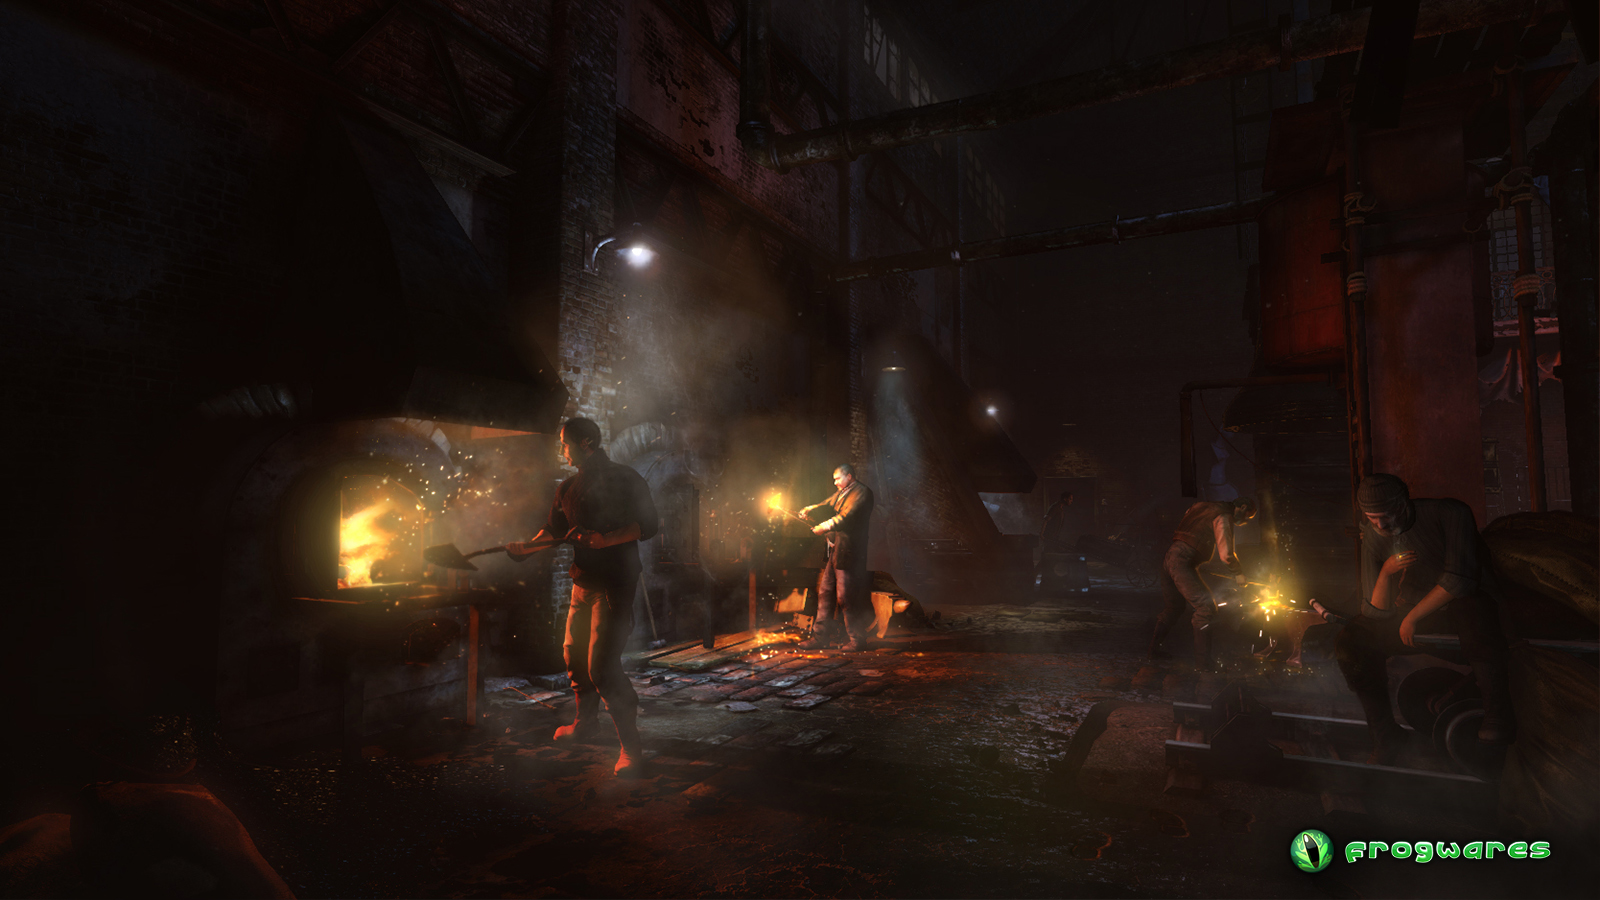 Devil's Daughter Foundry